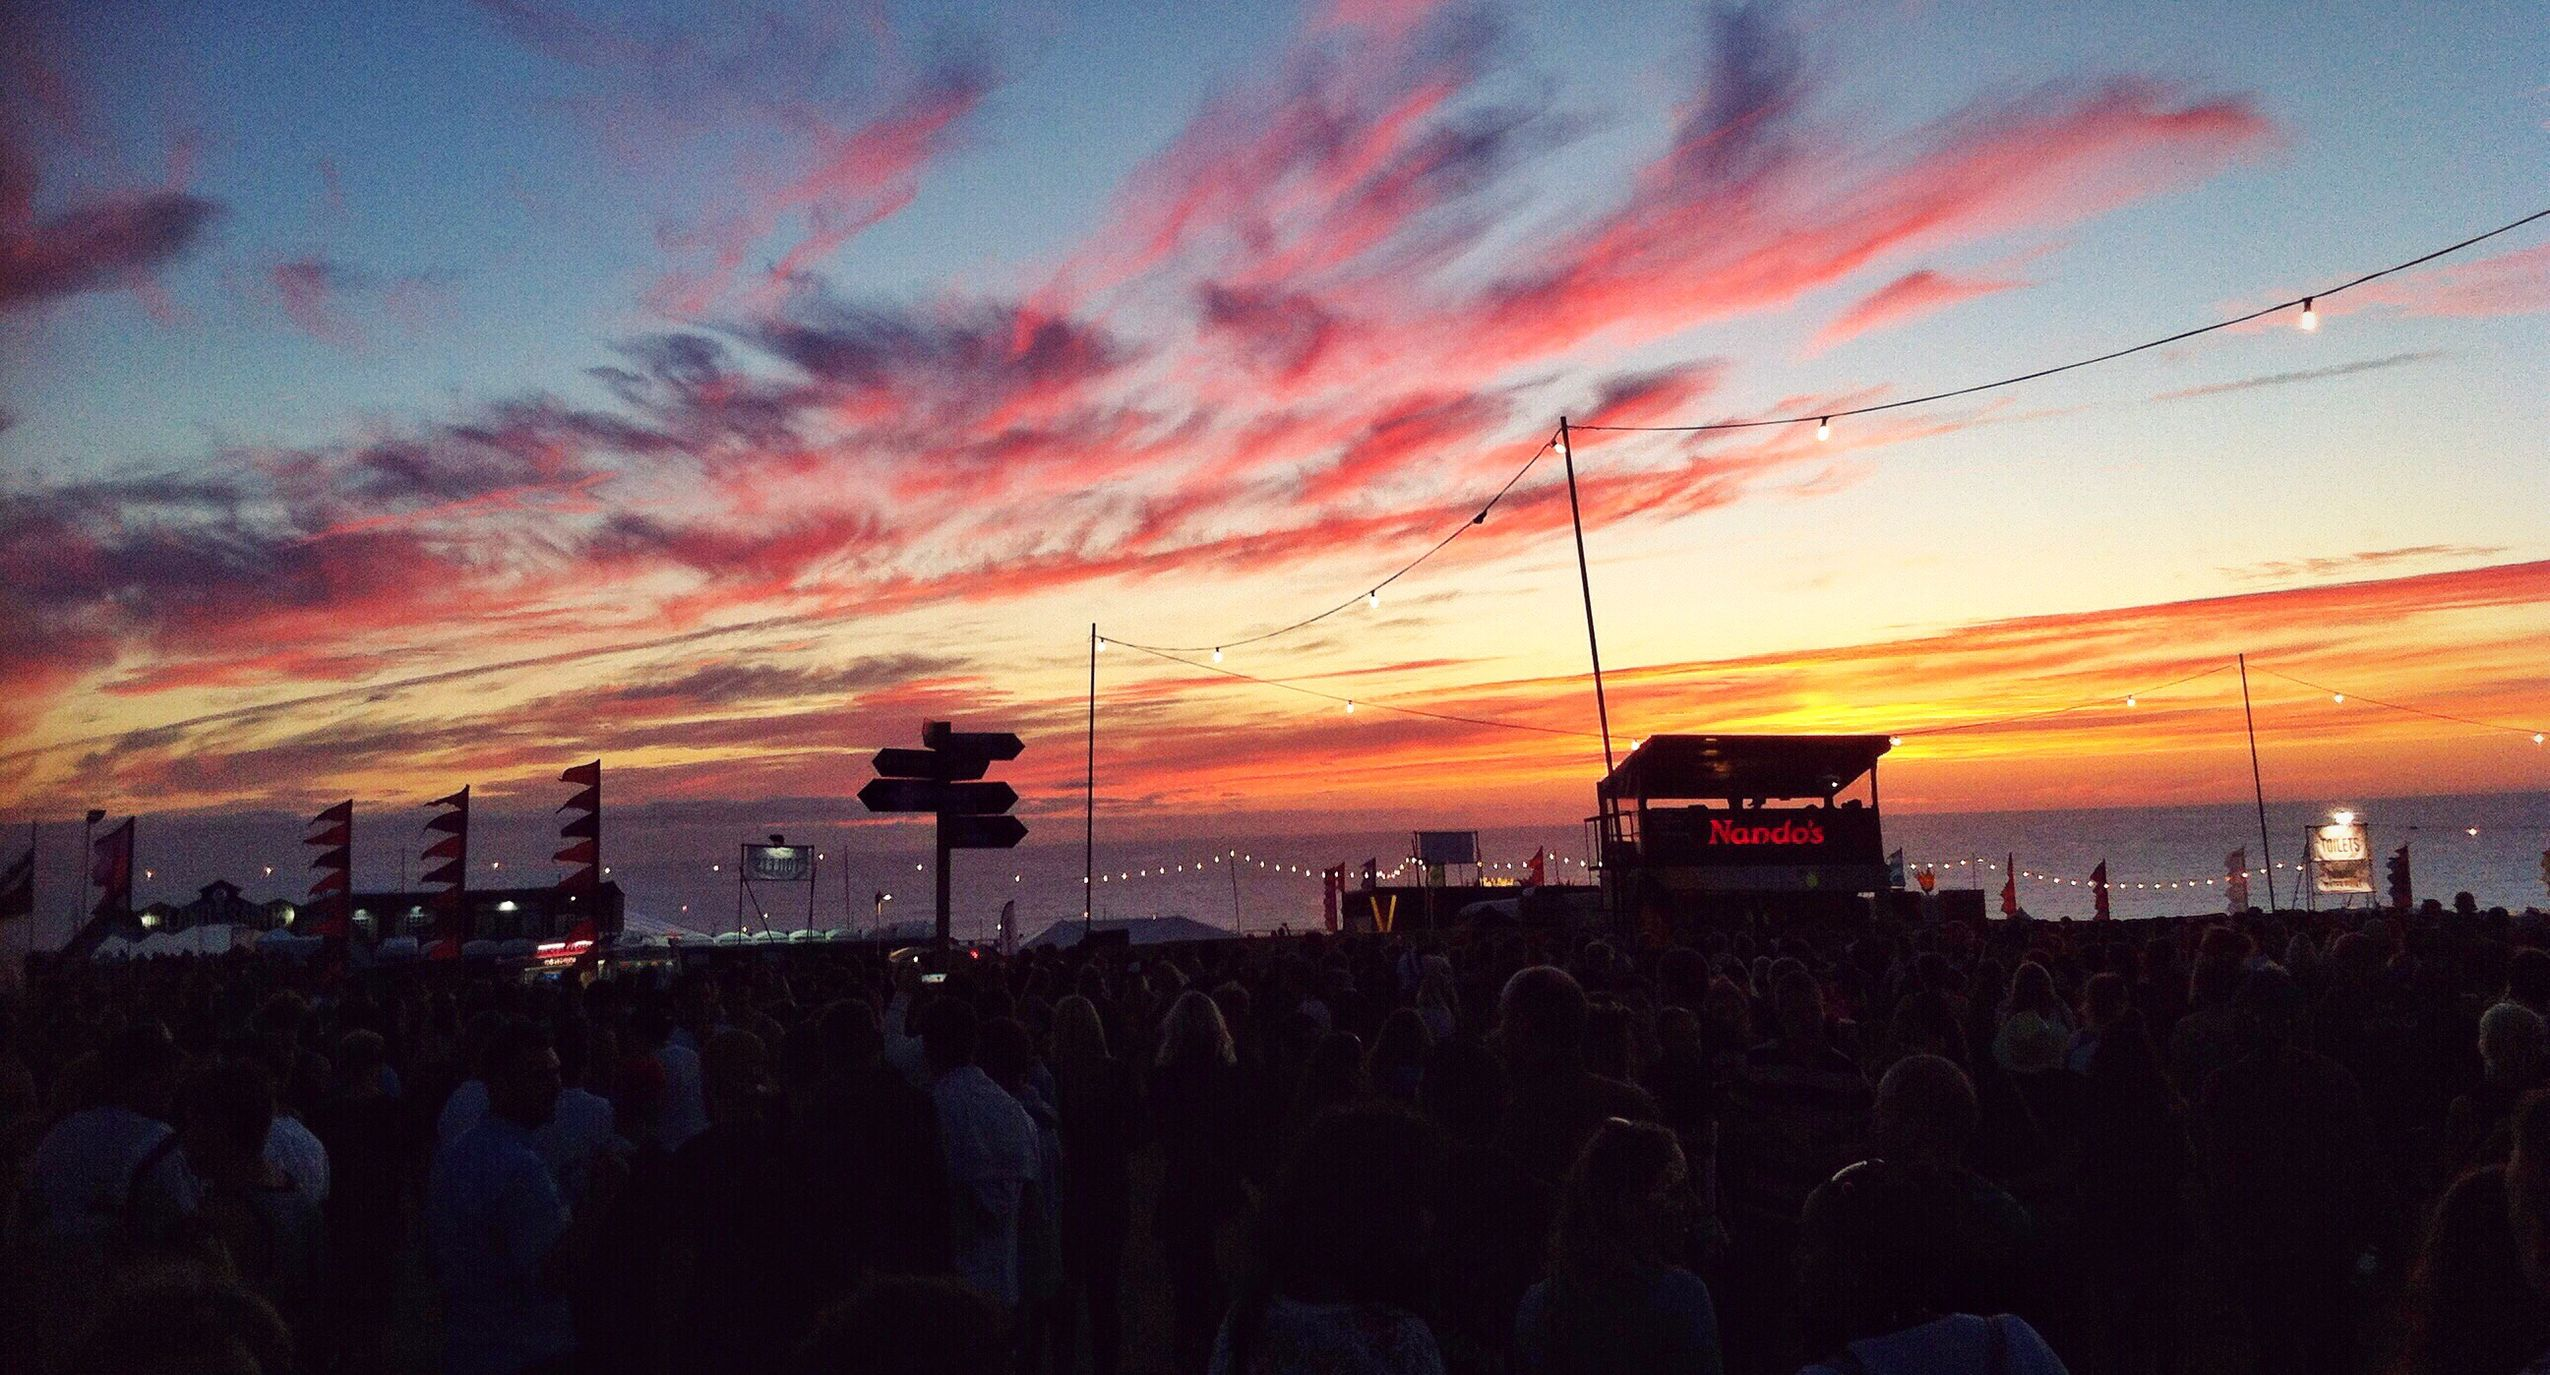 The Boardmasters Sunset 2016 Bestoftheday Sunset Musicfestival Surf Cornwall Boardmasters Taking Photos Beauty In Nature Skyporn